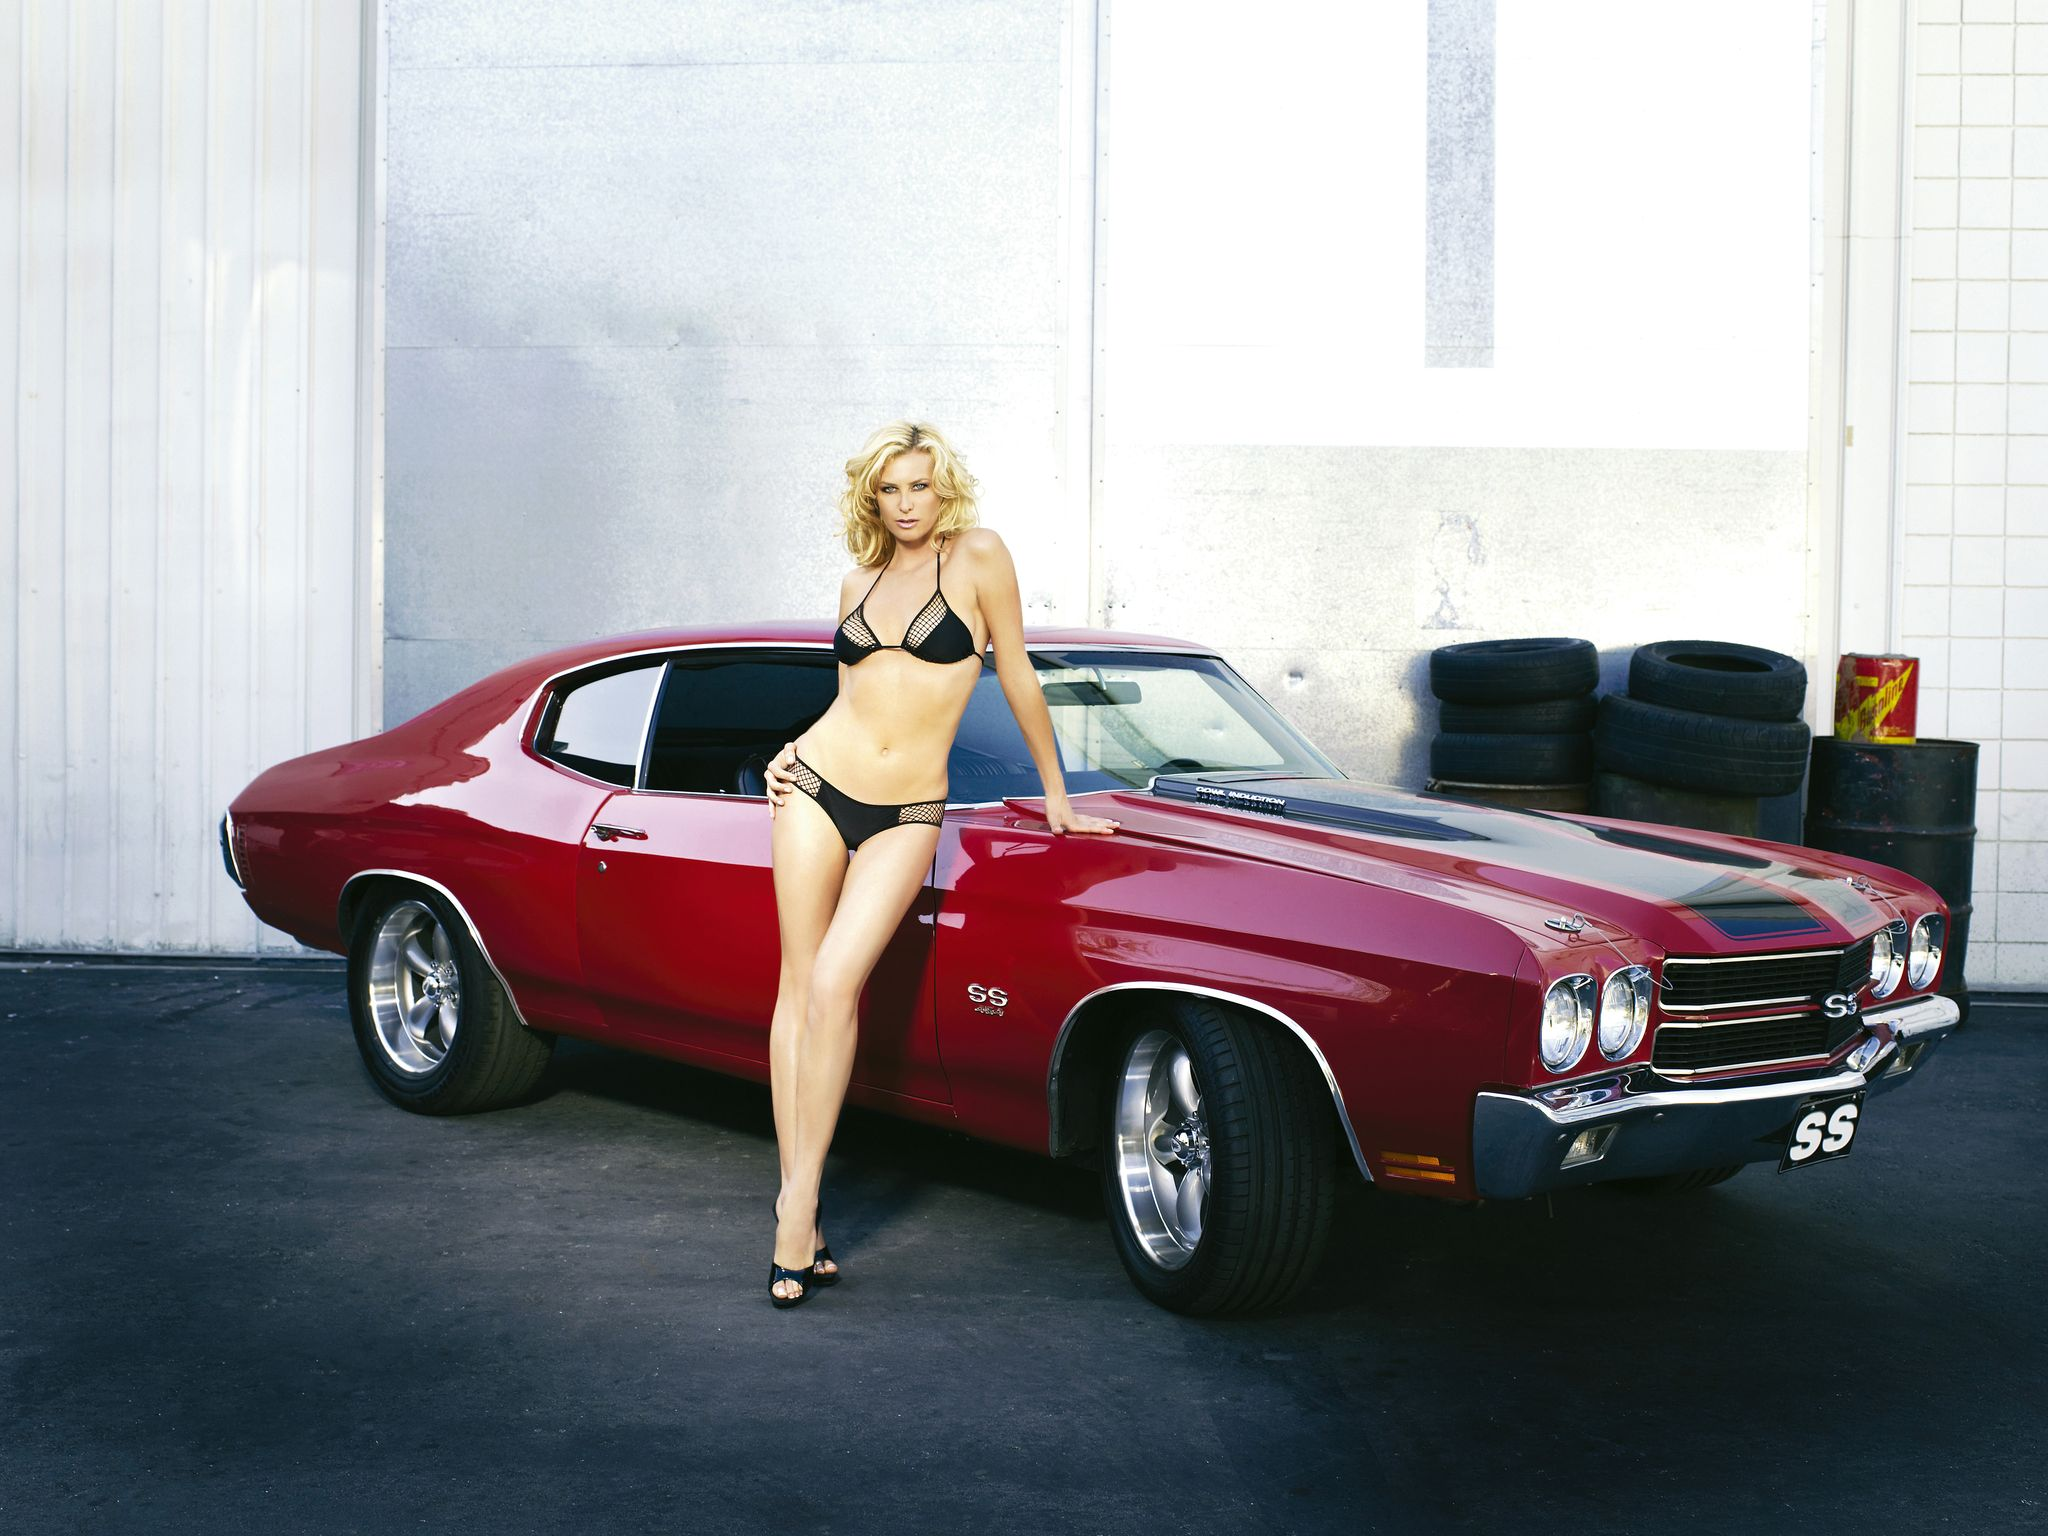 girls-cars_258a0fbf.jpg